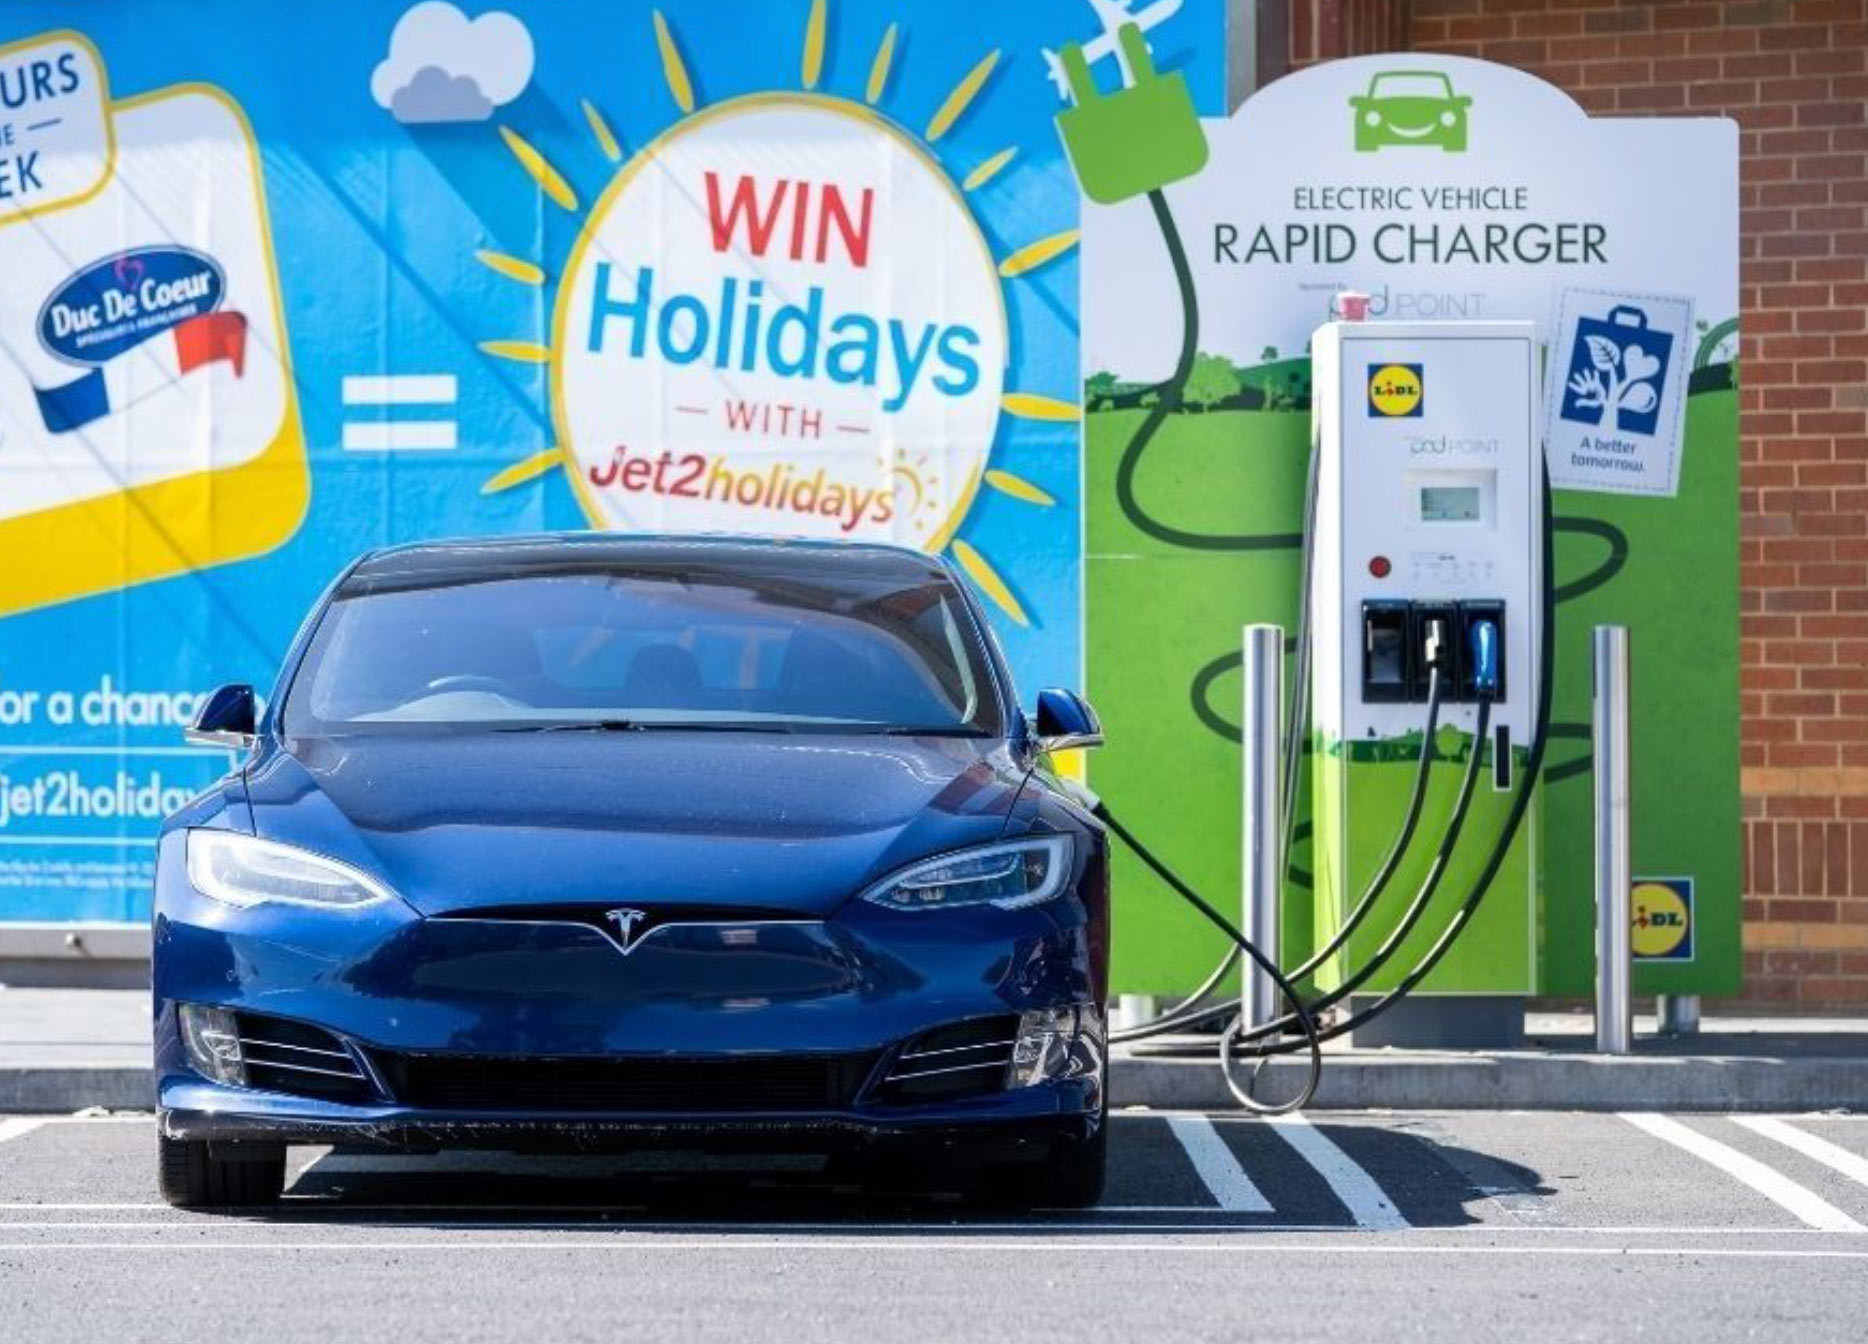 Lidl Pod Point Rapid Charger with Tesla